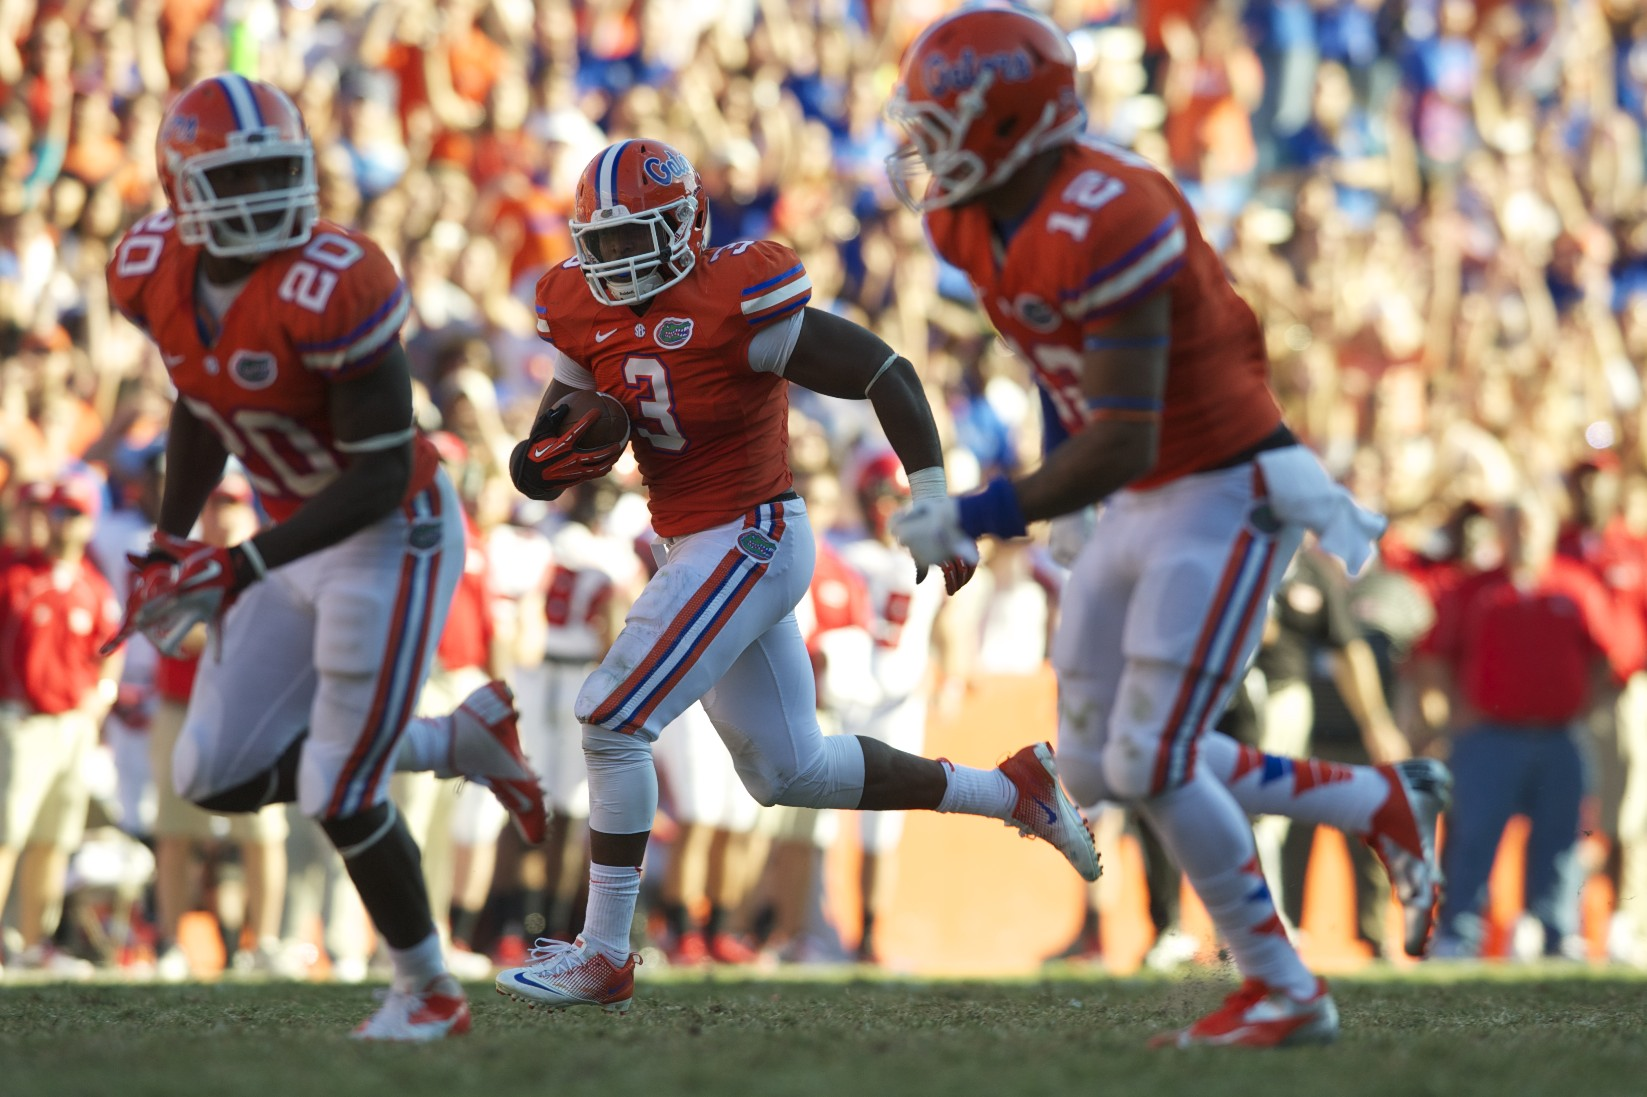 After a blocked punt by Florida's Loucheiz Purifoy, Jelani Jenkins (3) recovered the ball and ran for a touchdown in the final seconds of the game, allowing the Gators to take the win over Louisiana's Ragin' Cajuns.